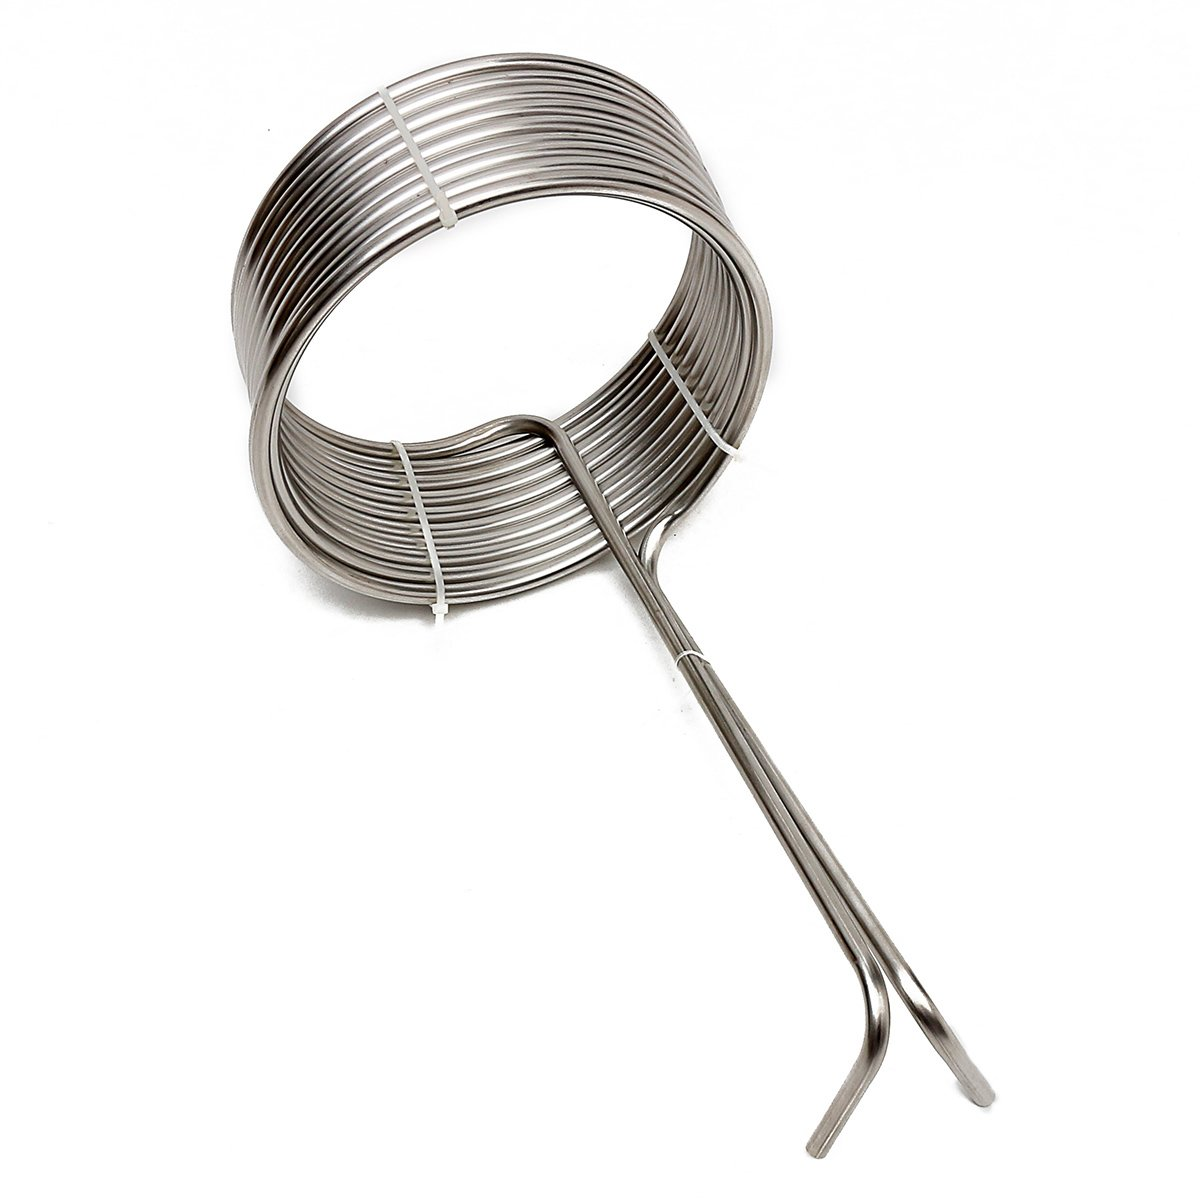 Cooling Coil Pipe, SENREAL Super Efficient Stainless Steel Cooling Coil Home Brewing Wort Chiller Pipe-#1 by SENREAL (Image #4)